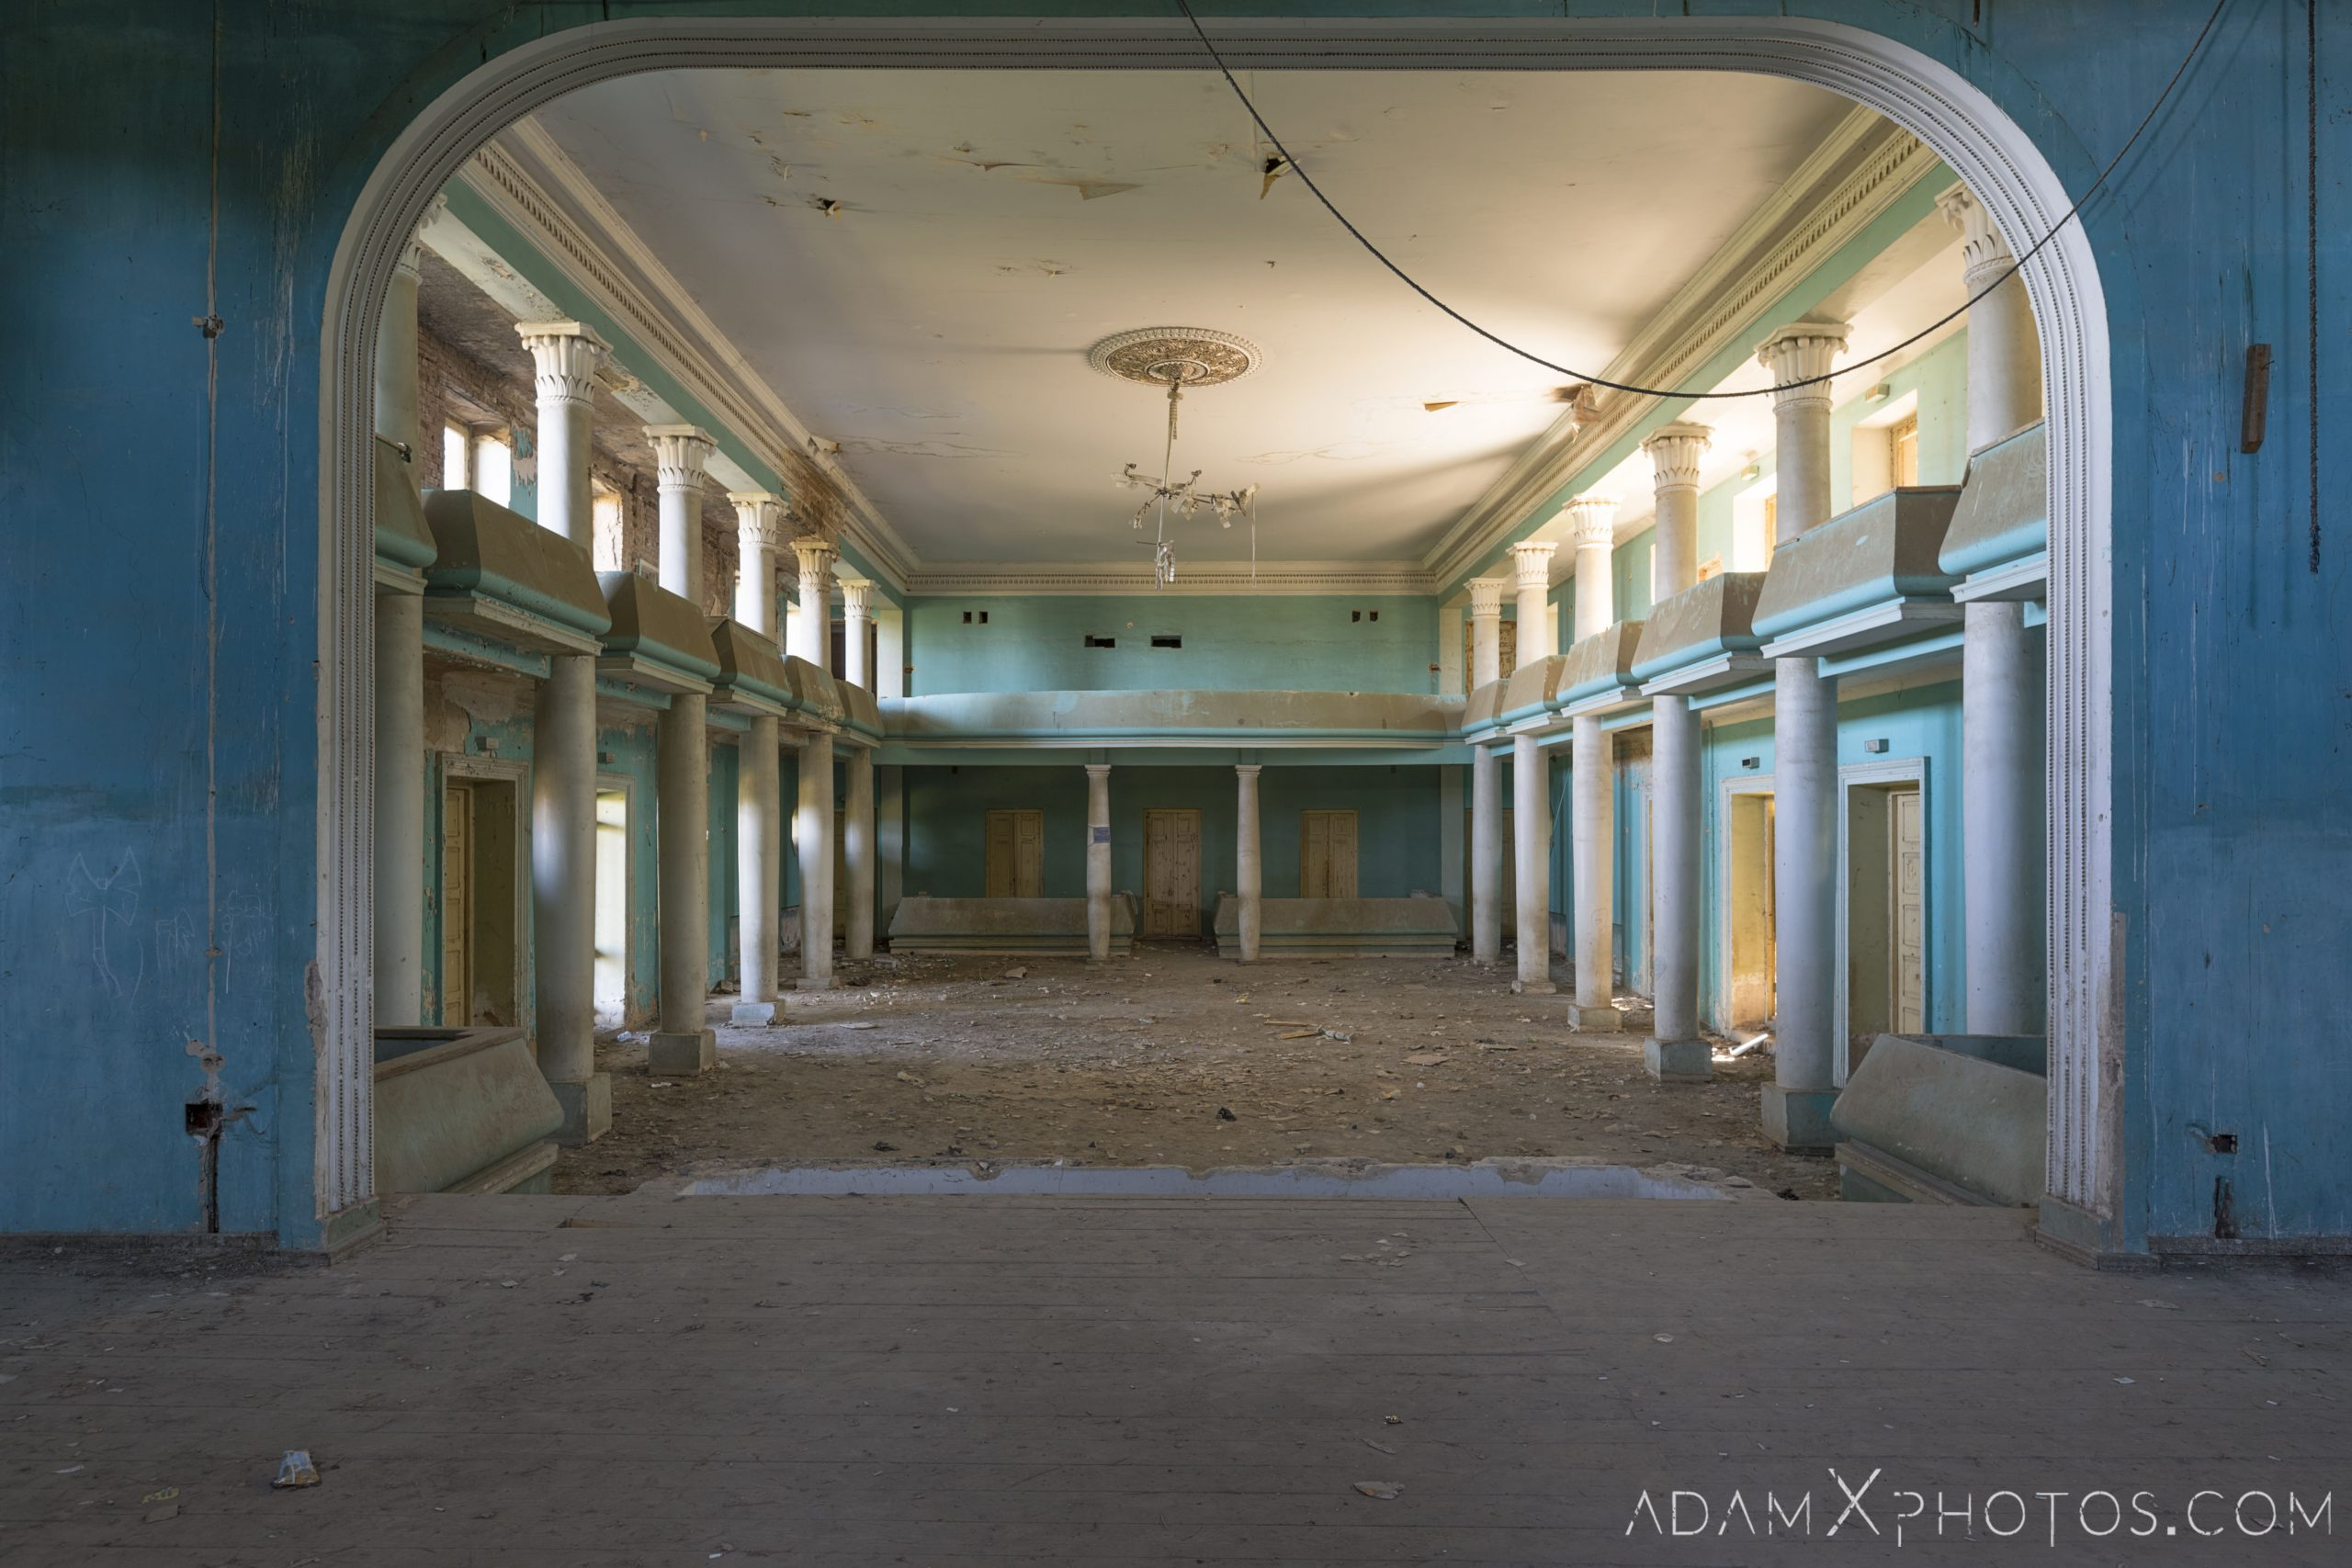 Stage House of Culture Palace Blue rural Soviet era Georgia Adam X AdamXPhotos Urbex Urban Exploration 2018 Abandoned Access History decay ruins lost forgotten derelict location creepy haunting eerie security